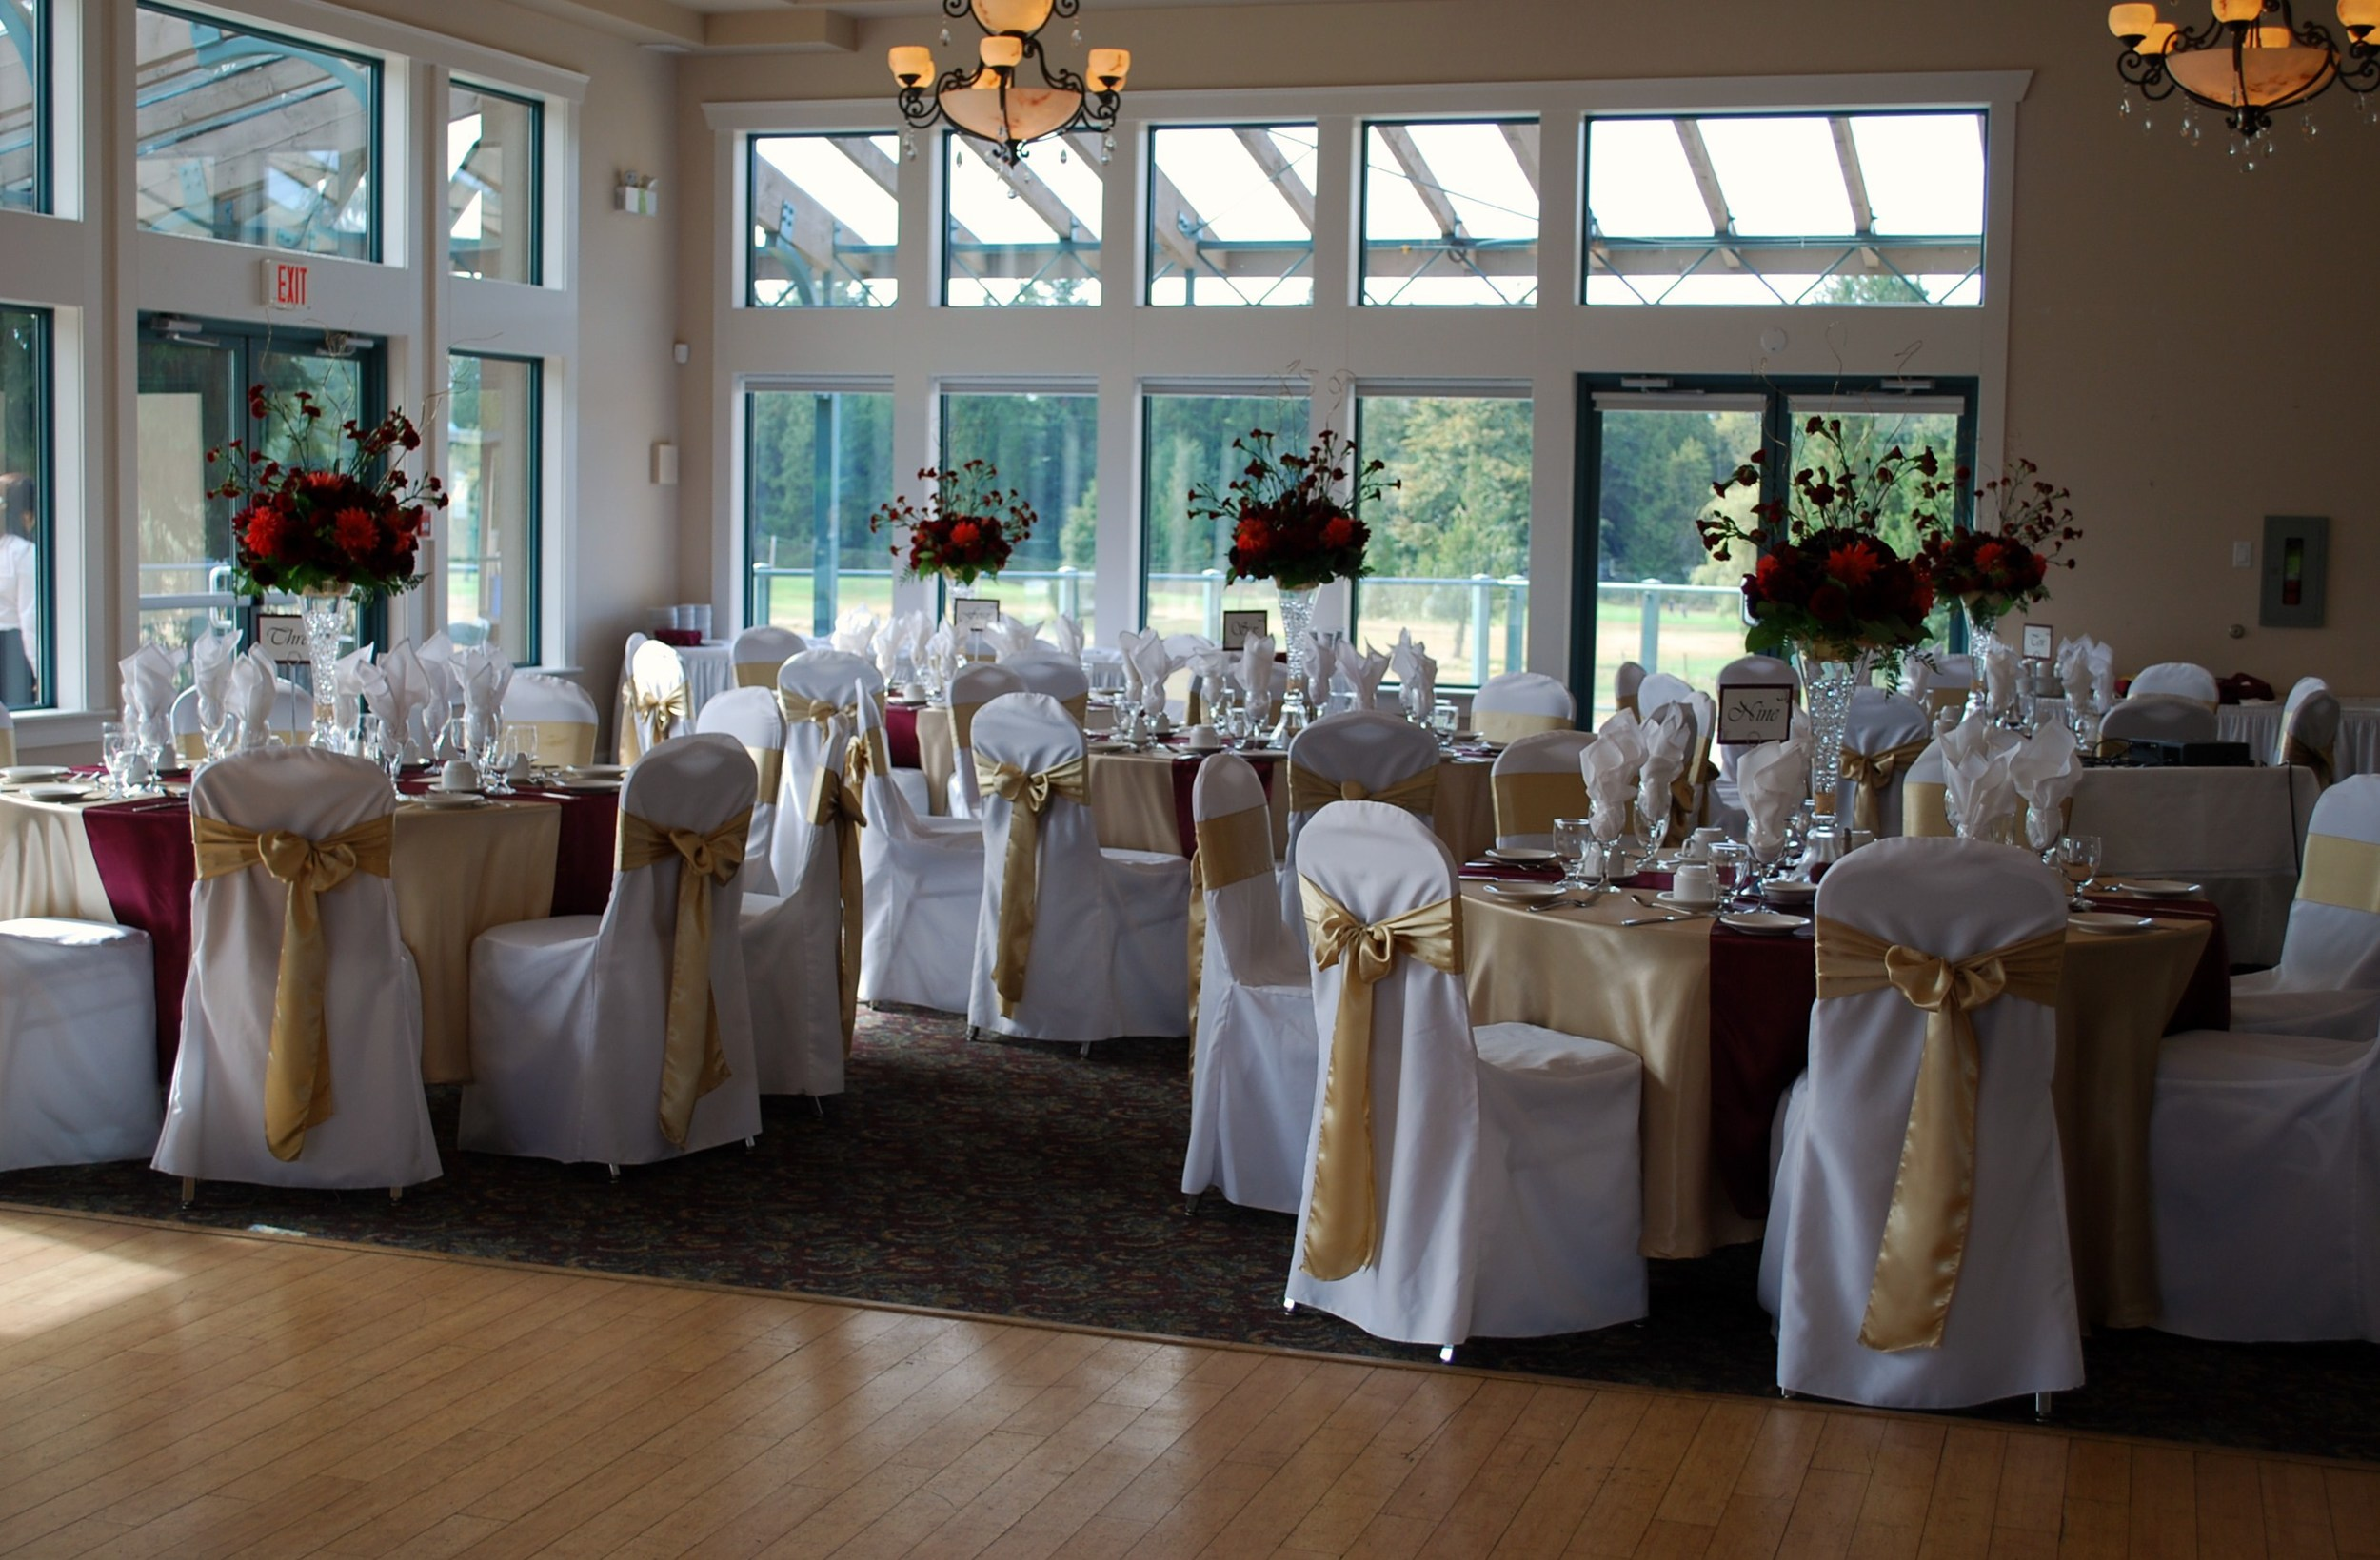 Langley Golf and Banquet center,  Design by Lili,  Flowers supplies by buckets fresh flowers